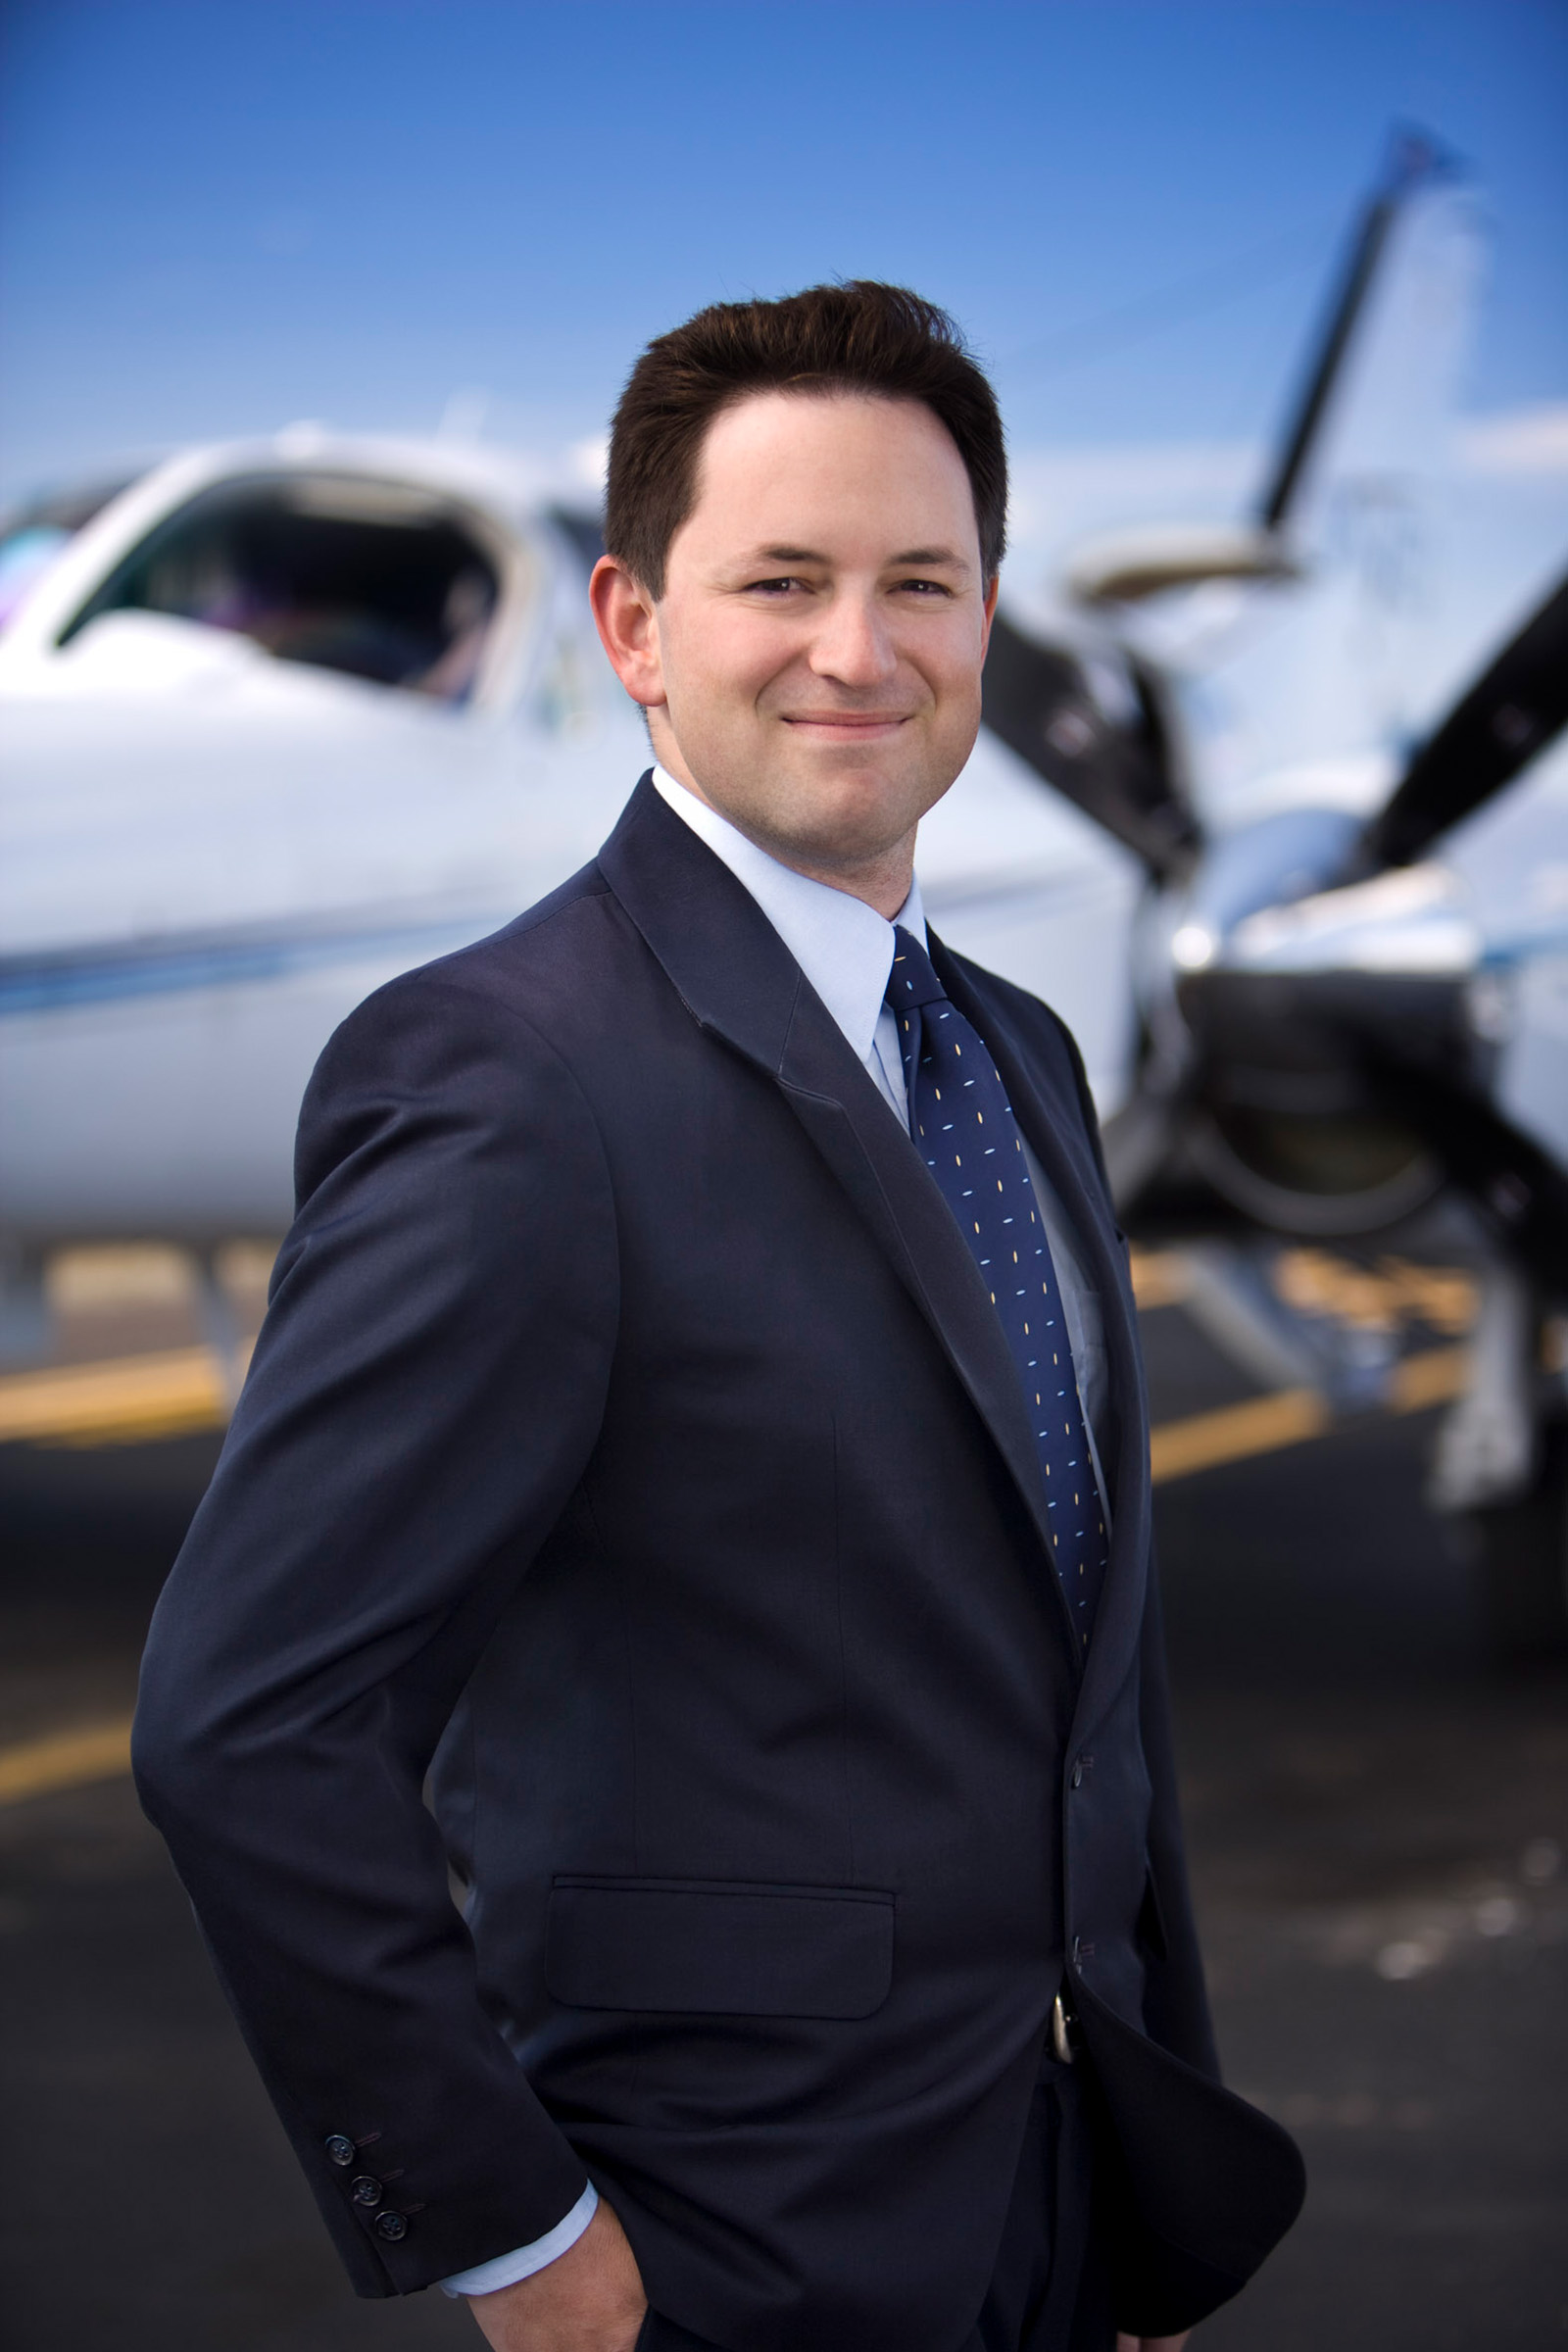 Corporate editorial location photography PWC male hands in pocket blue suit plane background